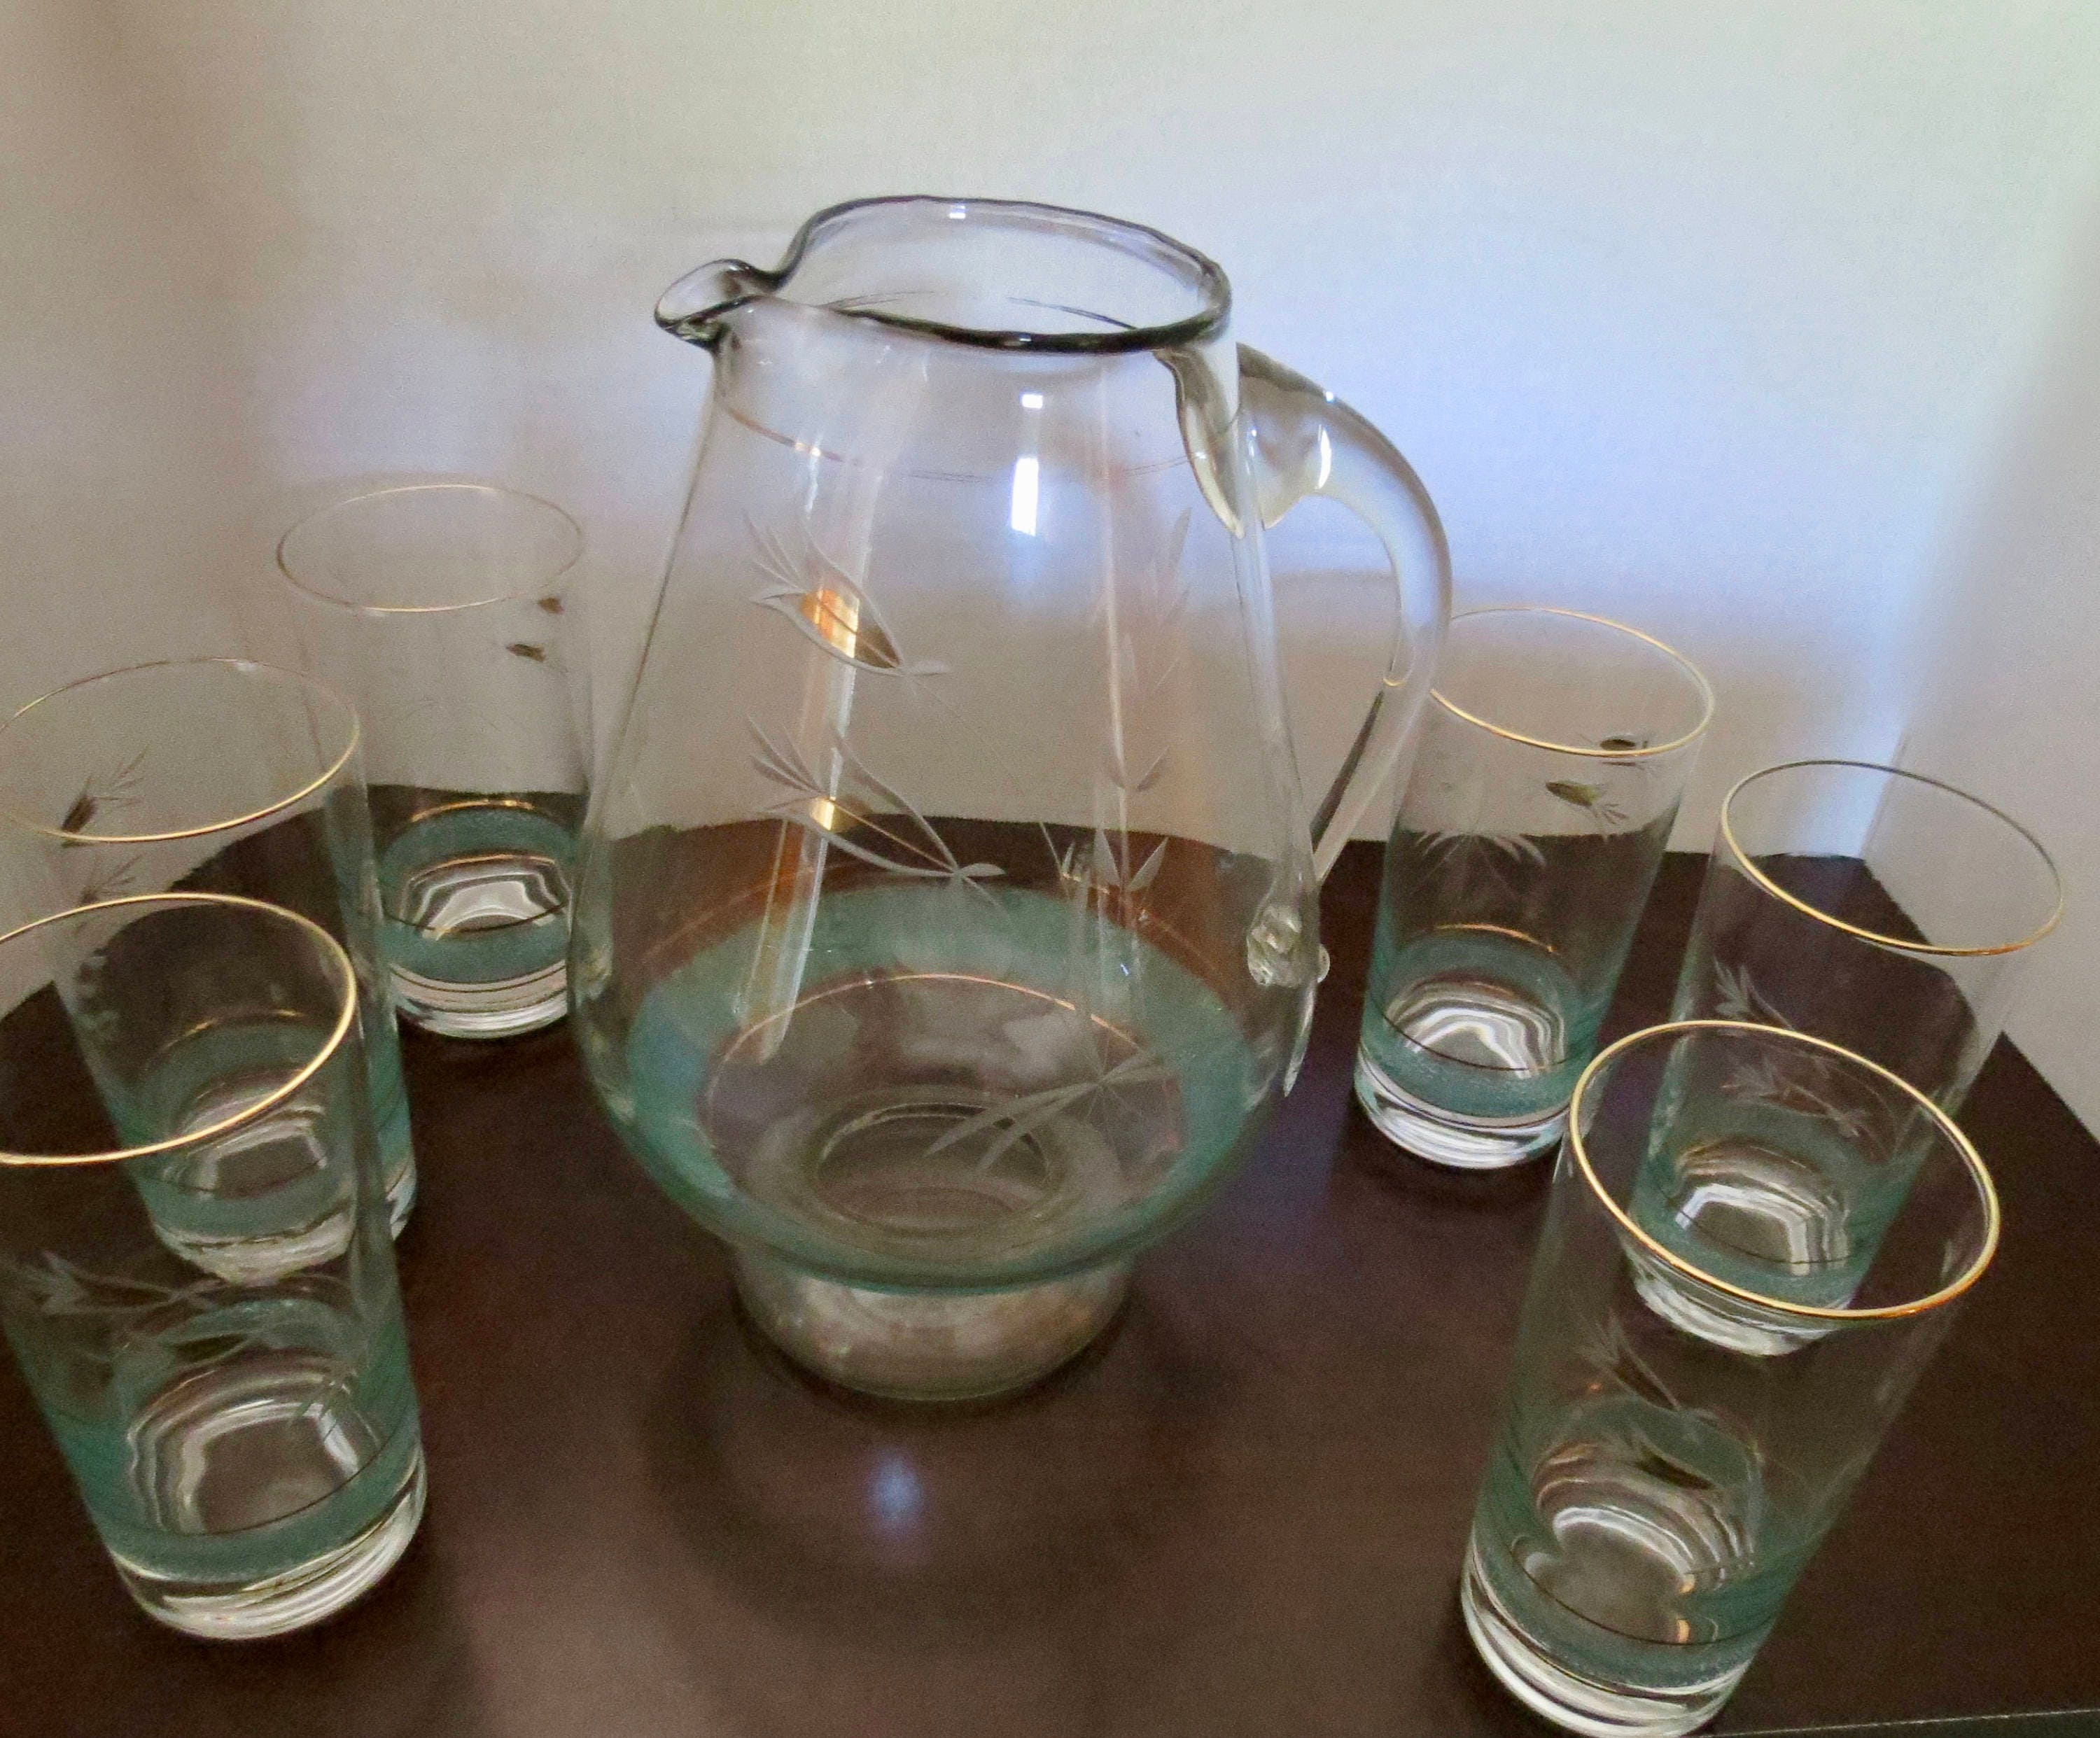 Image 5 of Vintage Pitcher Set - Mid Century Turquoise and Gold Graphics, Pitcher with Six